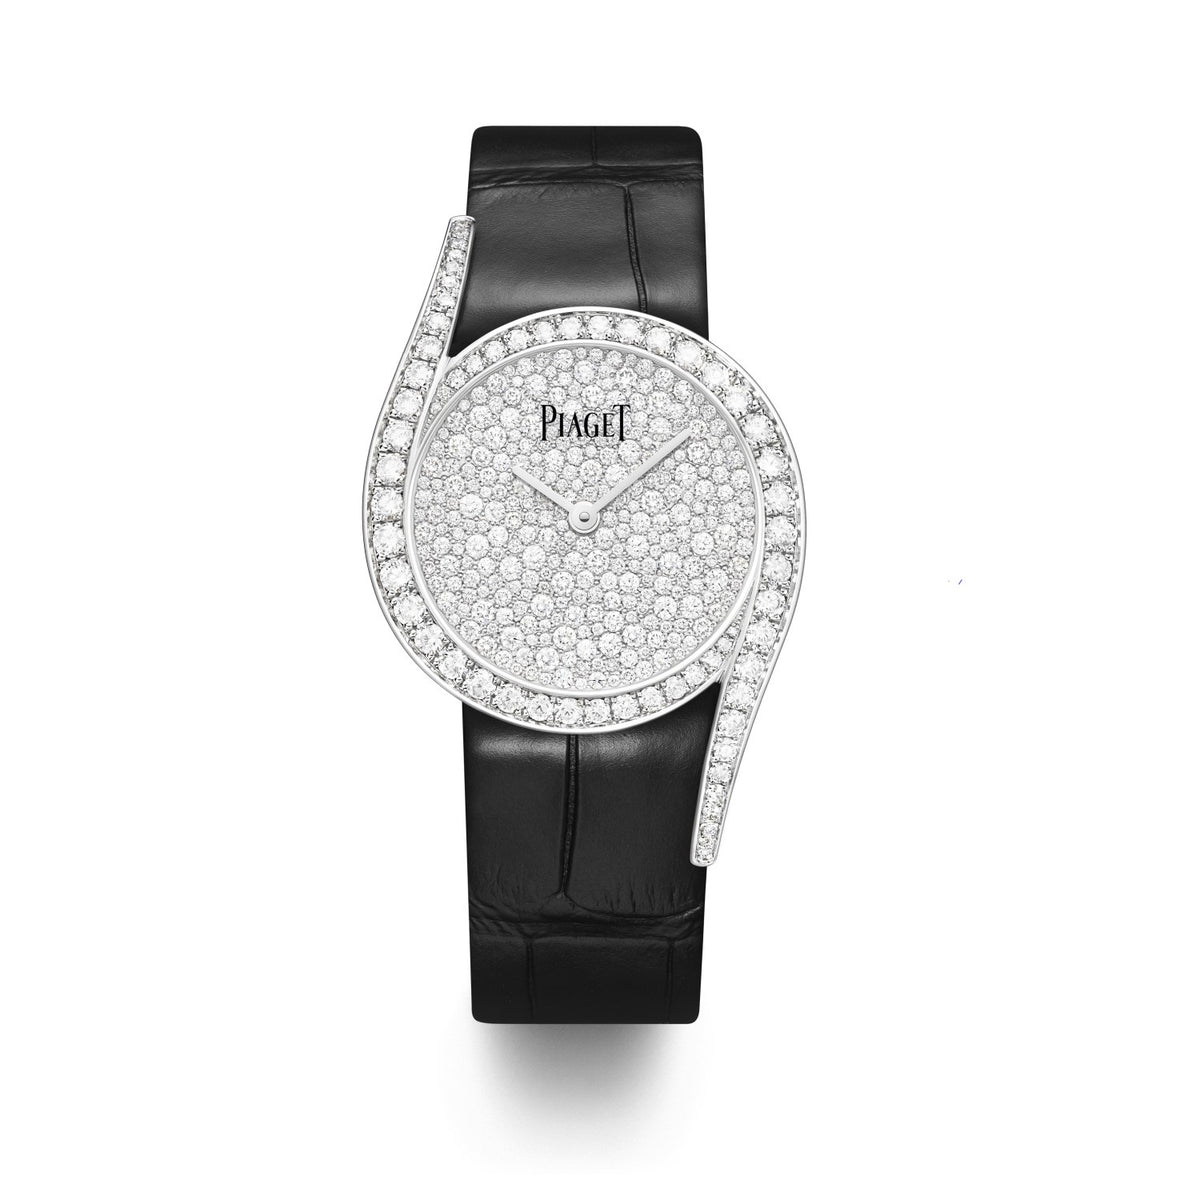 Limelight Gala watch, 32 mm. Case in 18K white gold set with 62 brilliant-cut diamonds (approx. 1.75 ct).